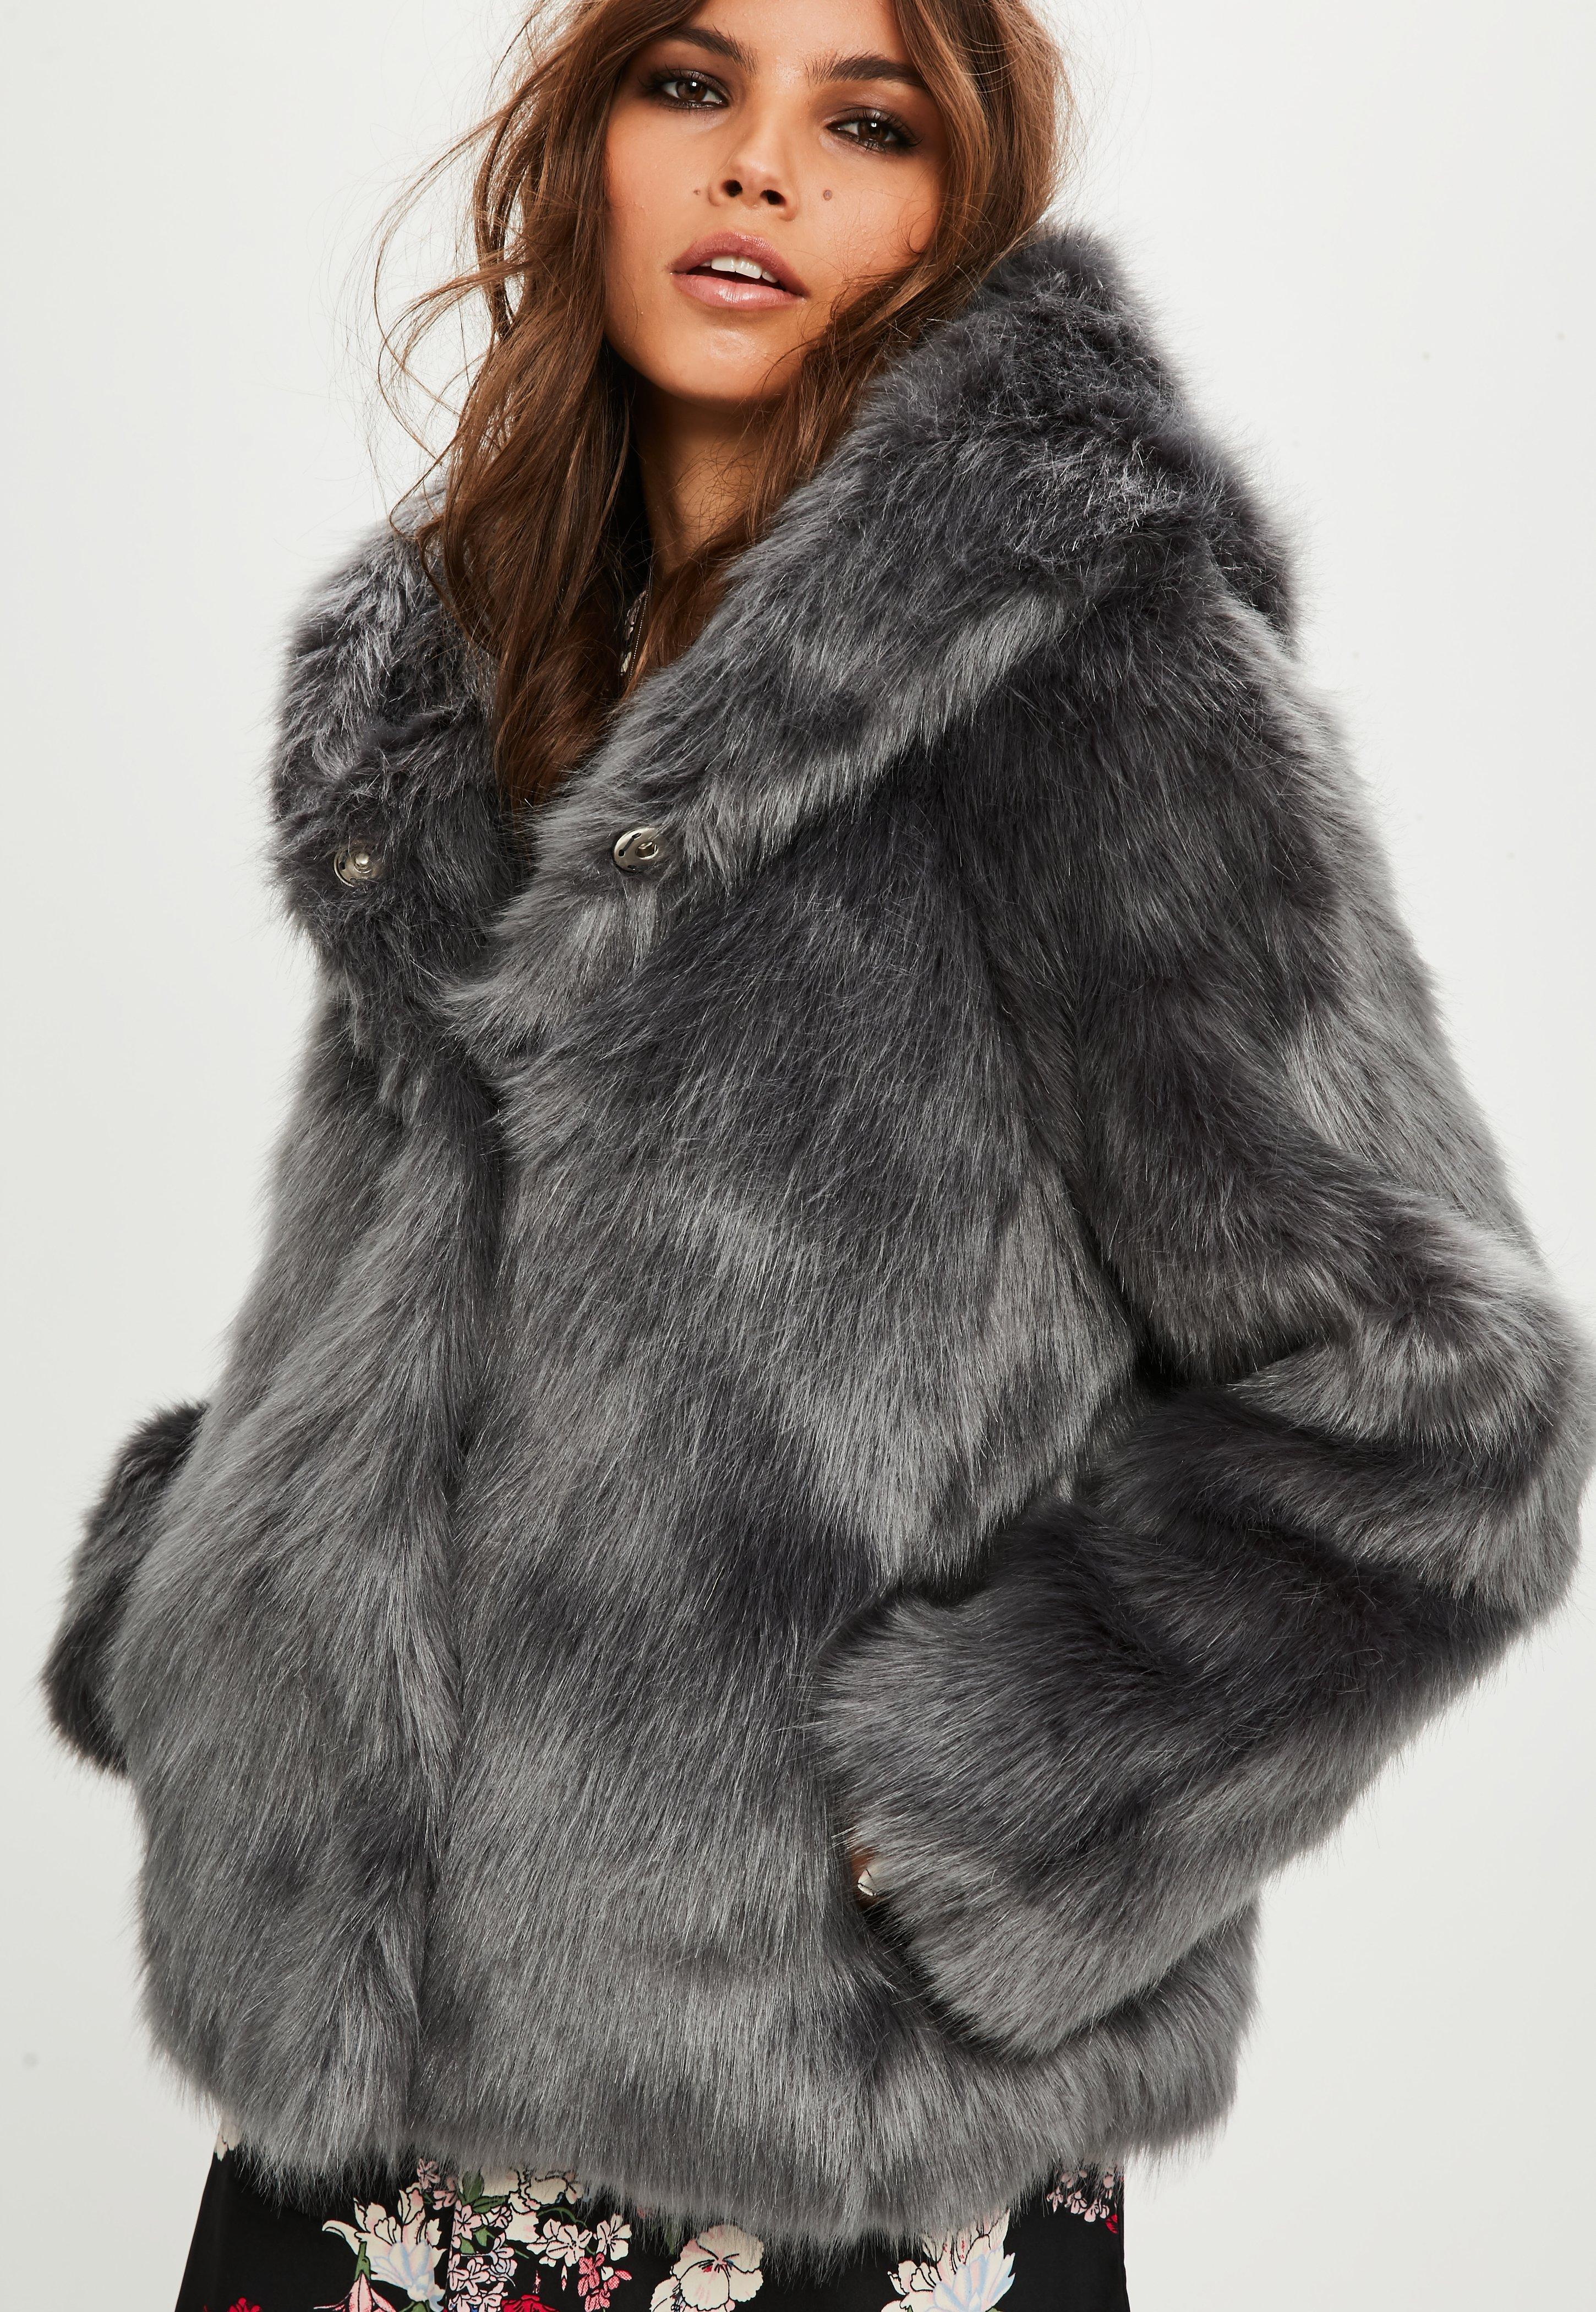 Rich in softness and exceptionally cozy, this ombre collection of faux fur gives you that warm and fuzzy feeling. The gorgeous gradient on each silky strand creates the look and feel of genuine fur. We can arrange for next day delivery to most destinations within the contiguous 48 states, for an.